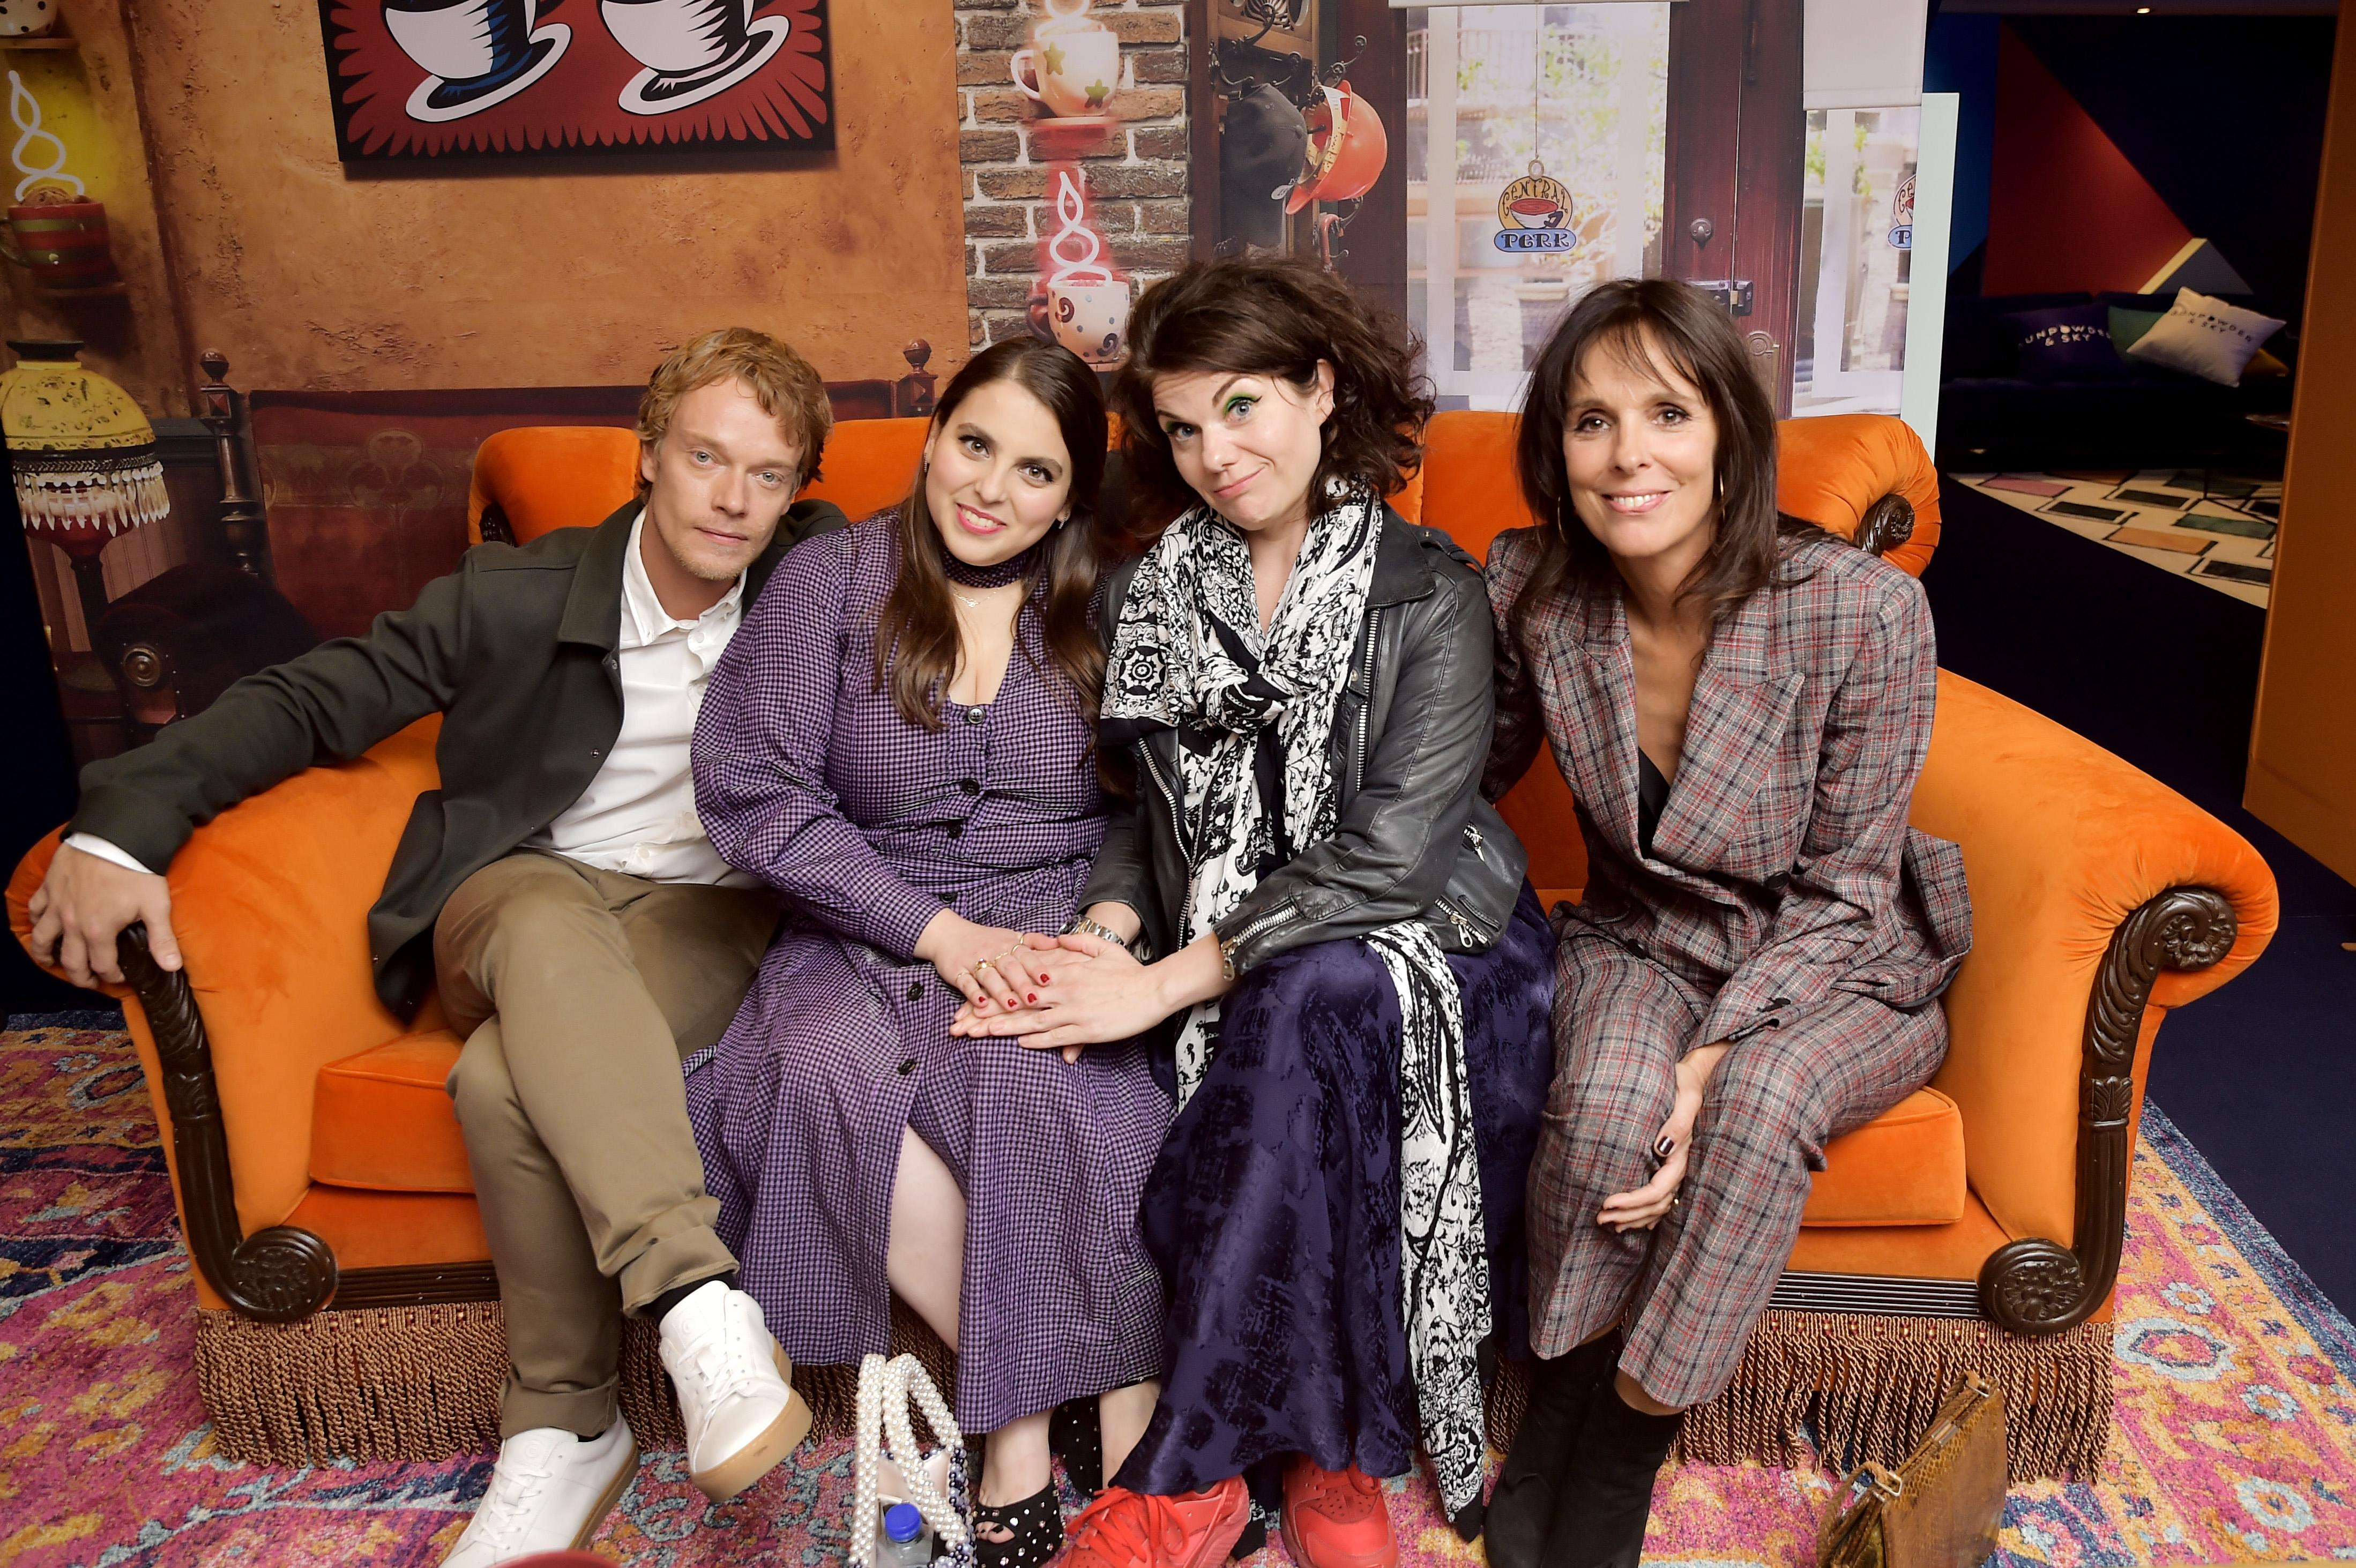 Alfie Allen, Beanie Feldstein, Caitlin Moran and Coky Giedroyc during Toronto International Film Festival 2019. (Photo by Stefanie Keenan/Getty Images for AT&T)